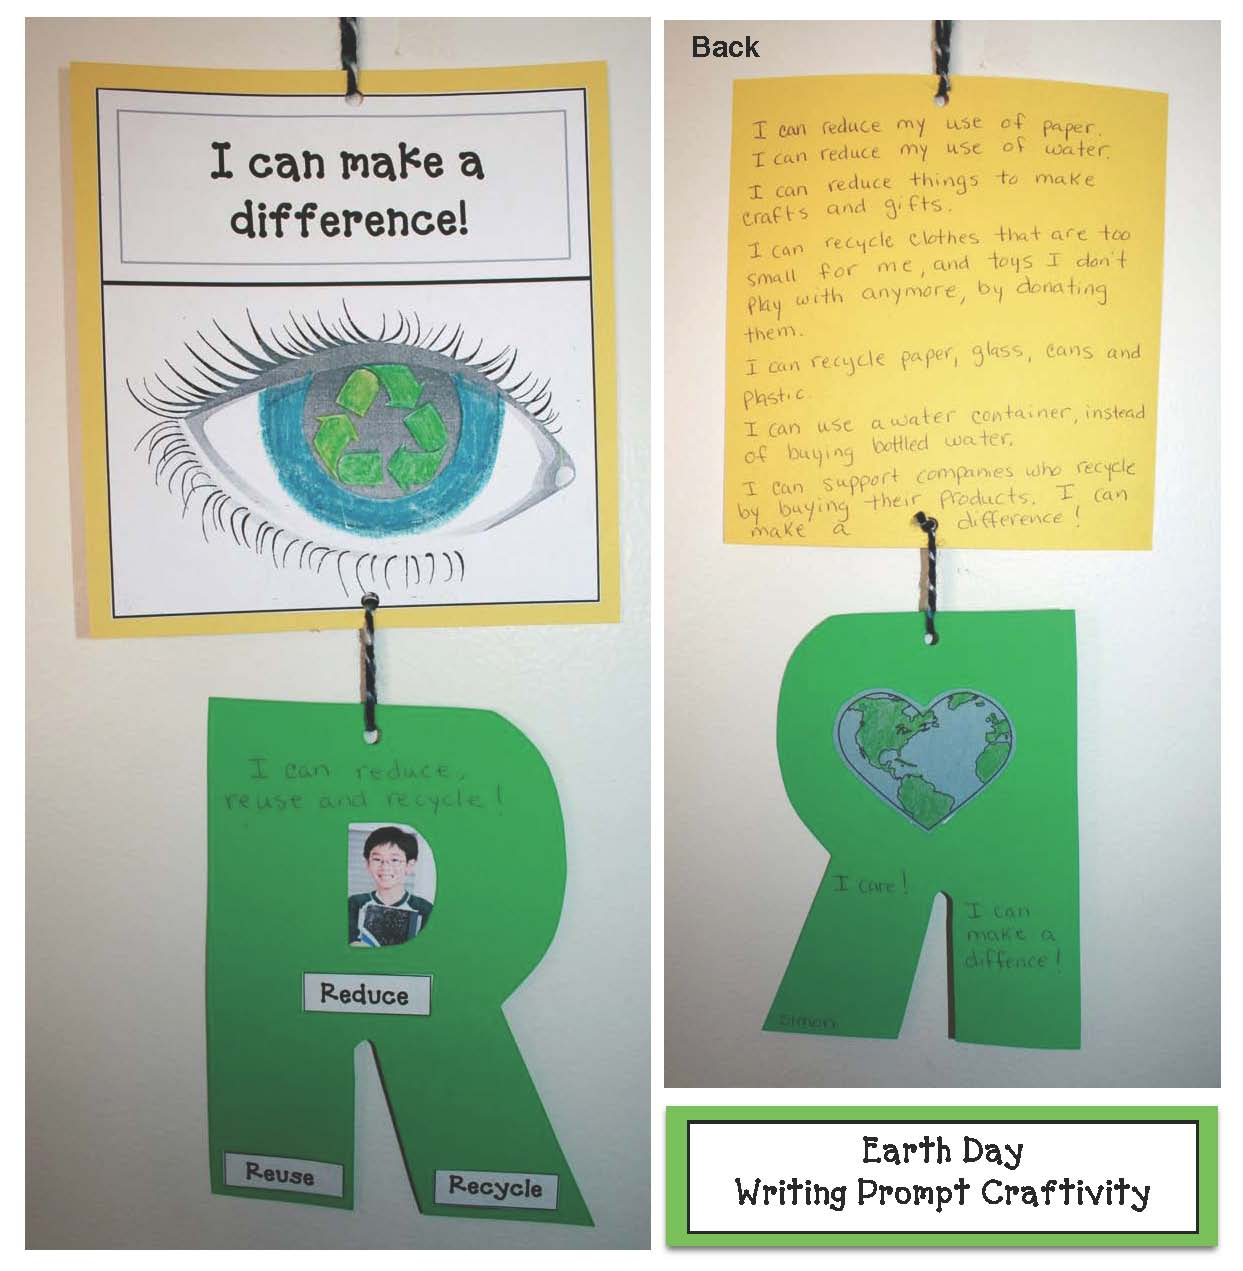 earth day crafts, earth day writing prompts, reduce reuse recycle activities, writing prompts for april